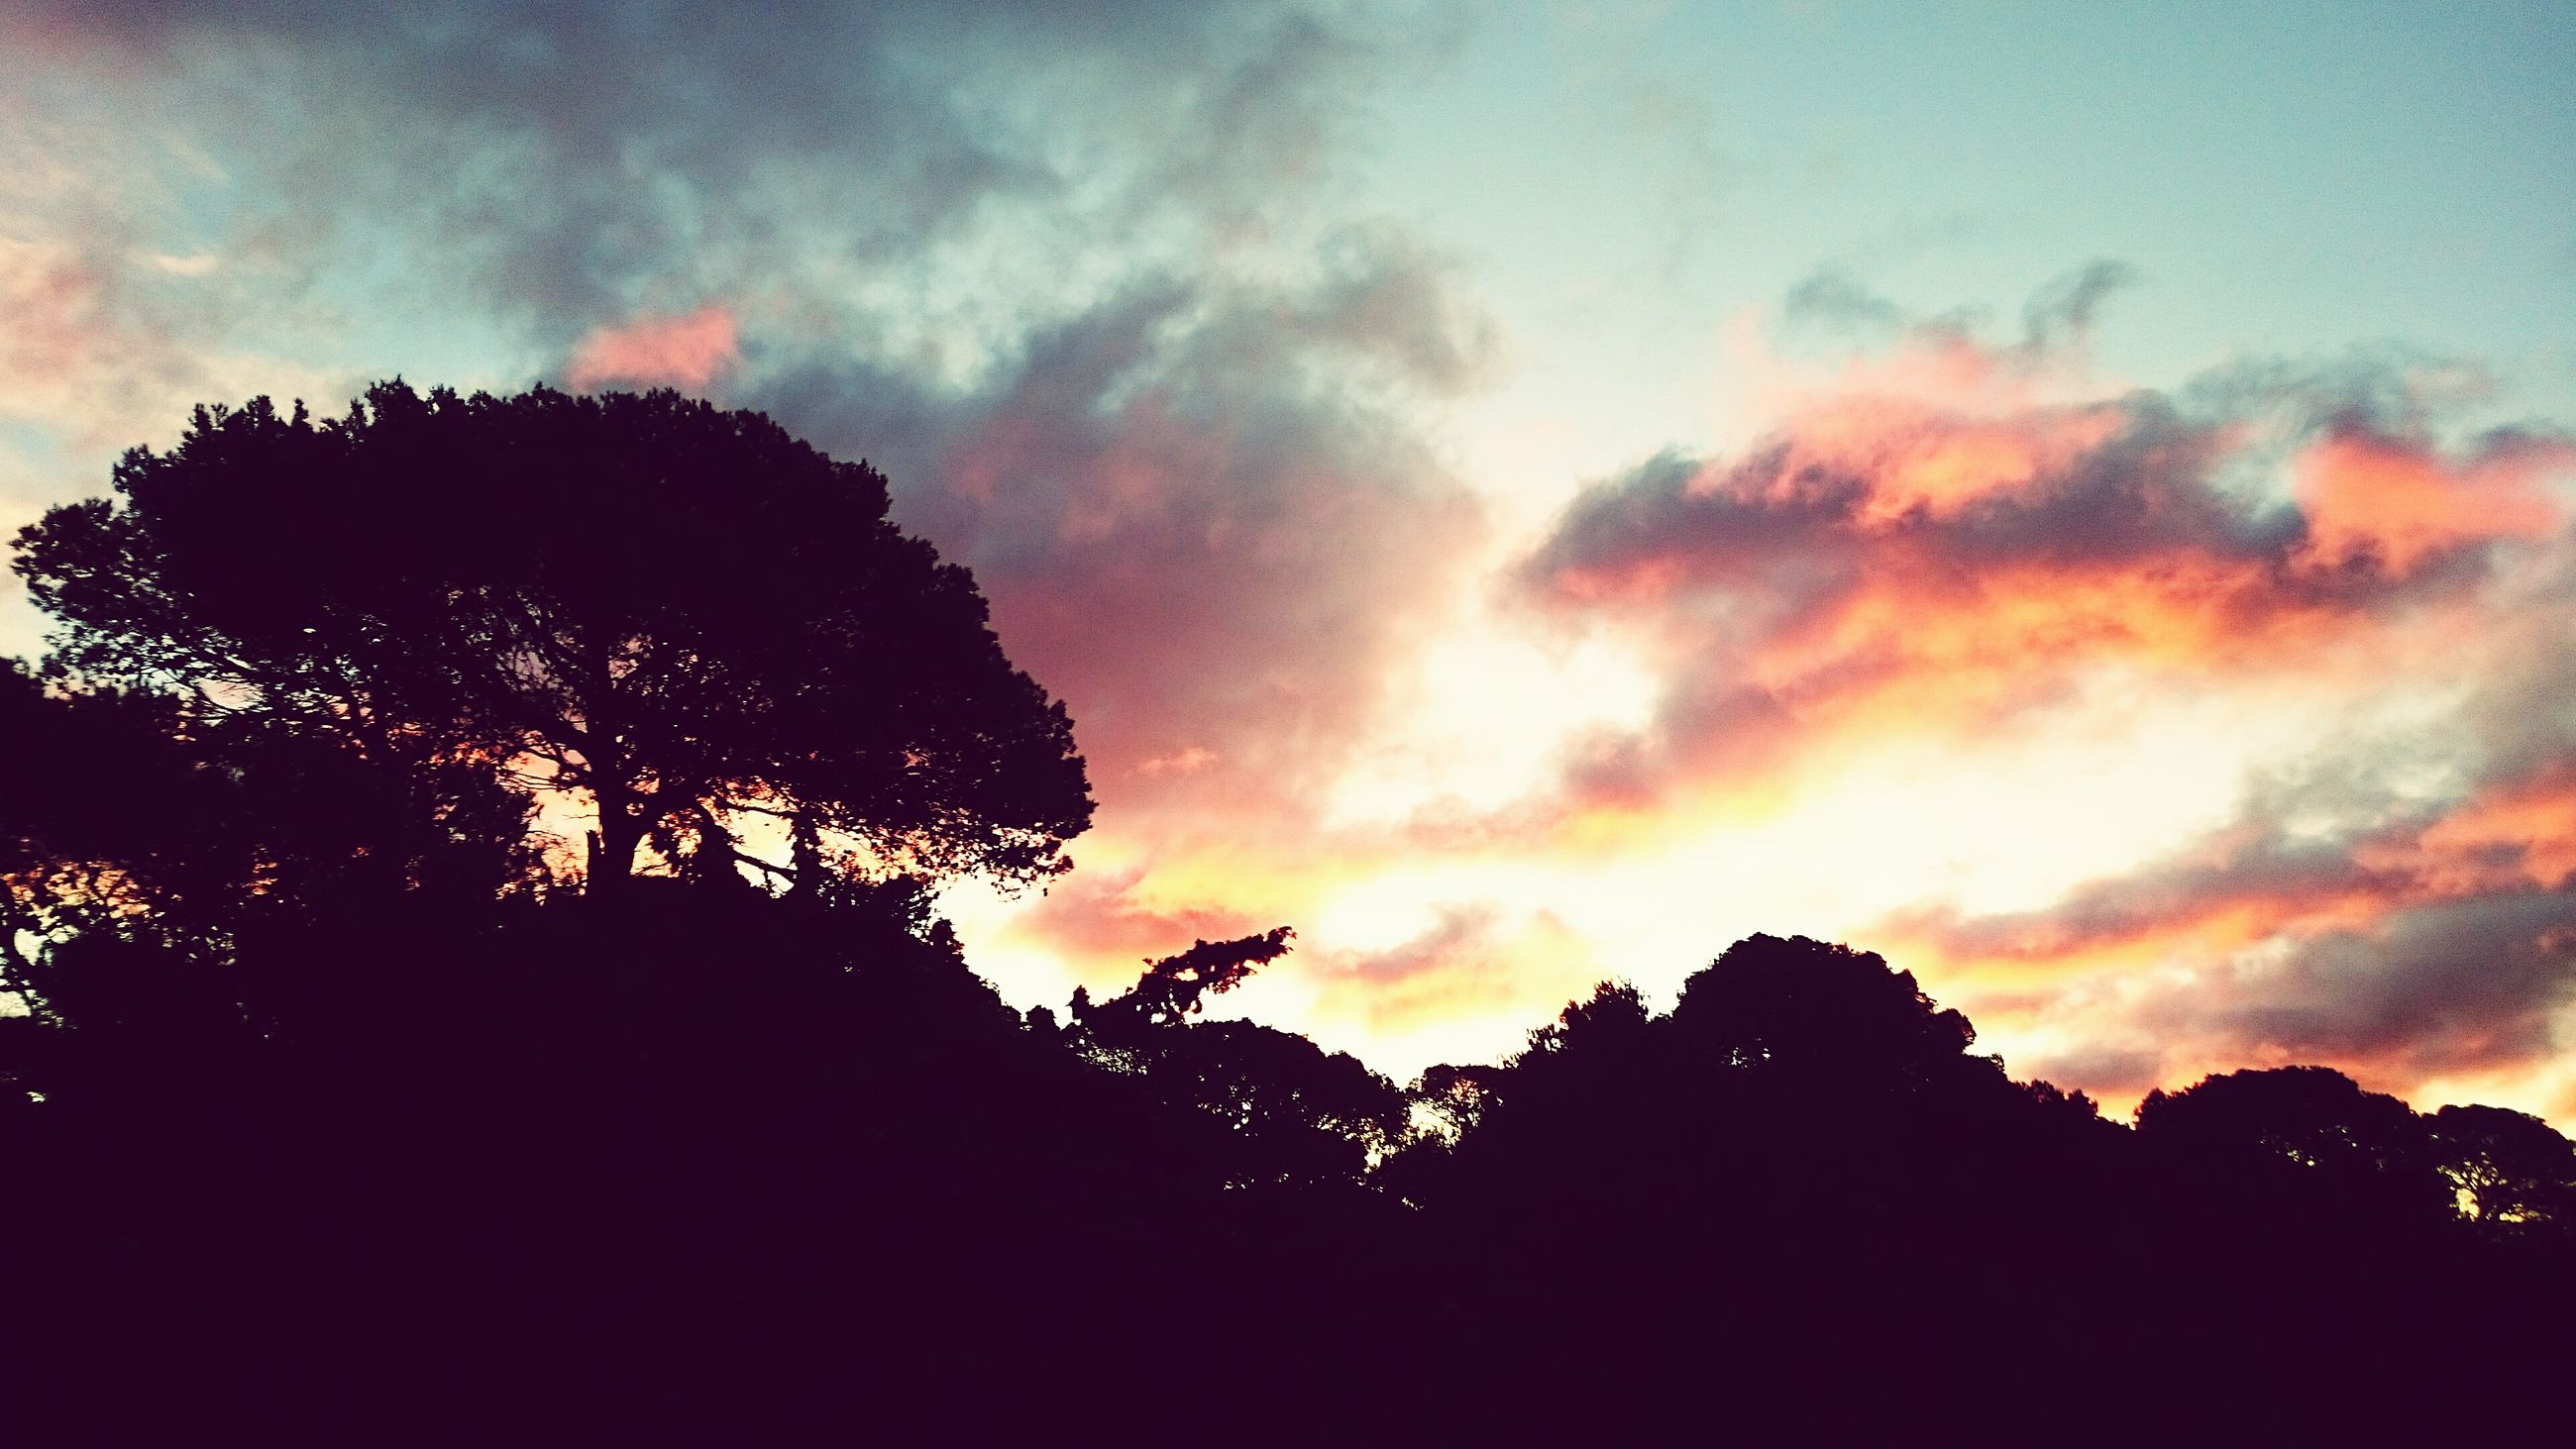 silhouette, sky, sunset, cloud - sky, tree, low angle view, beauty in nature, scenics, tranquility, tranquil scene, dramatic sky, cloudy, nature, orange color, cloud, idyllic, dusk, outdoors, no people, growth